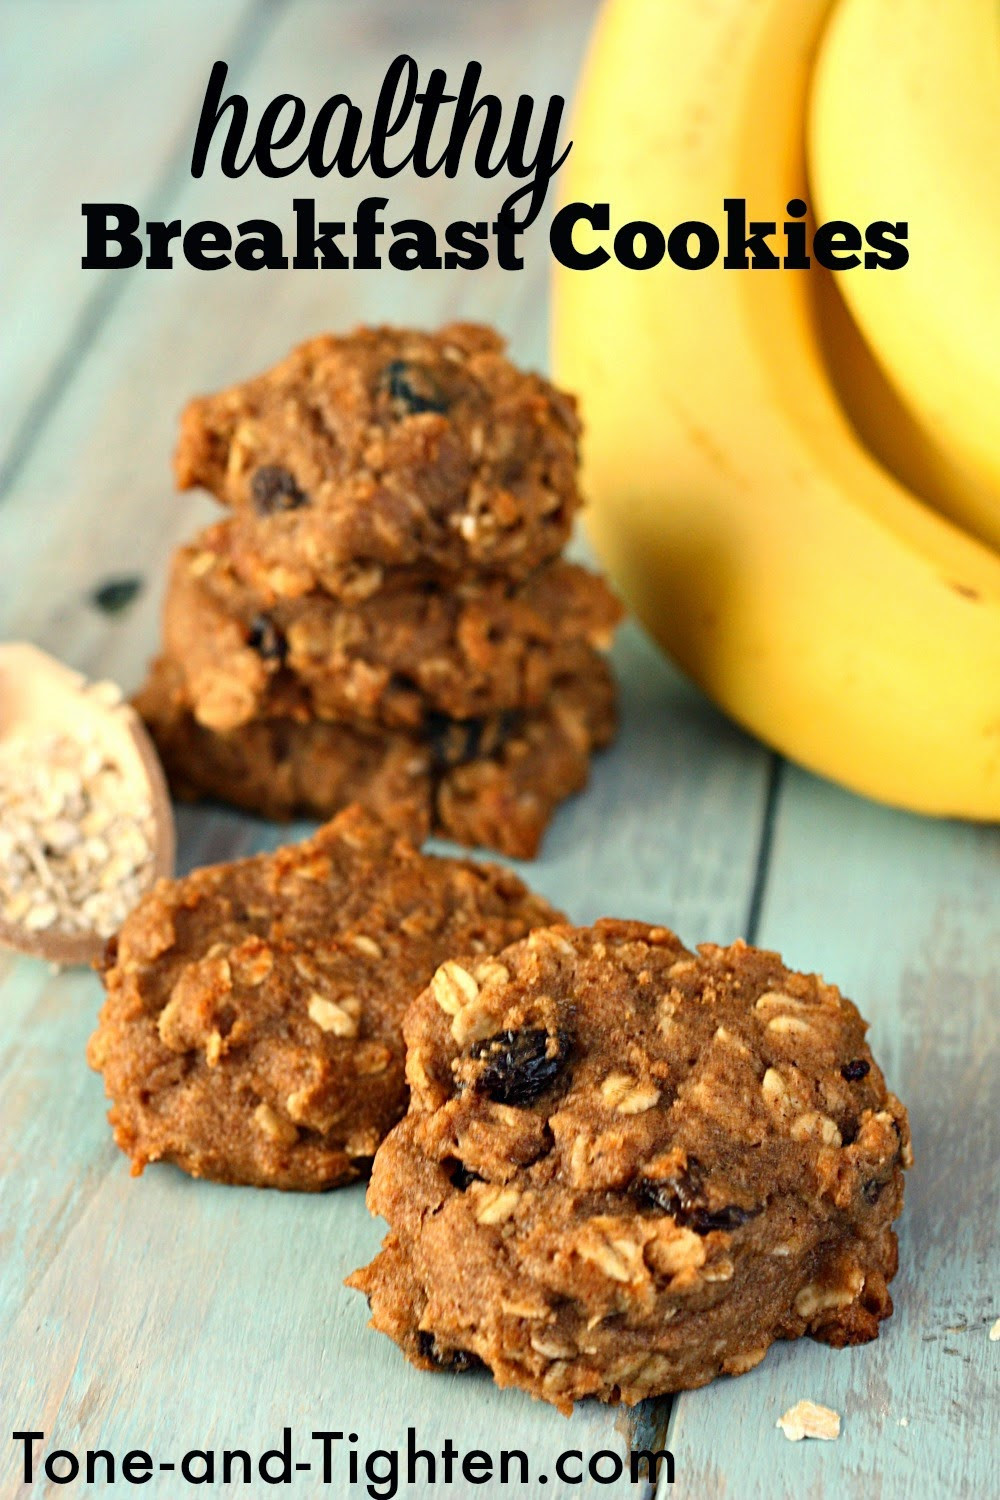 Healthy Breakfast Cookie Recipes  Weight Watchers Loaded Ve able Soup Recipe full of